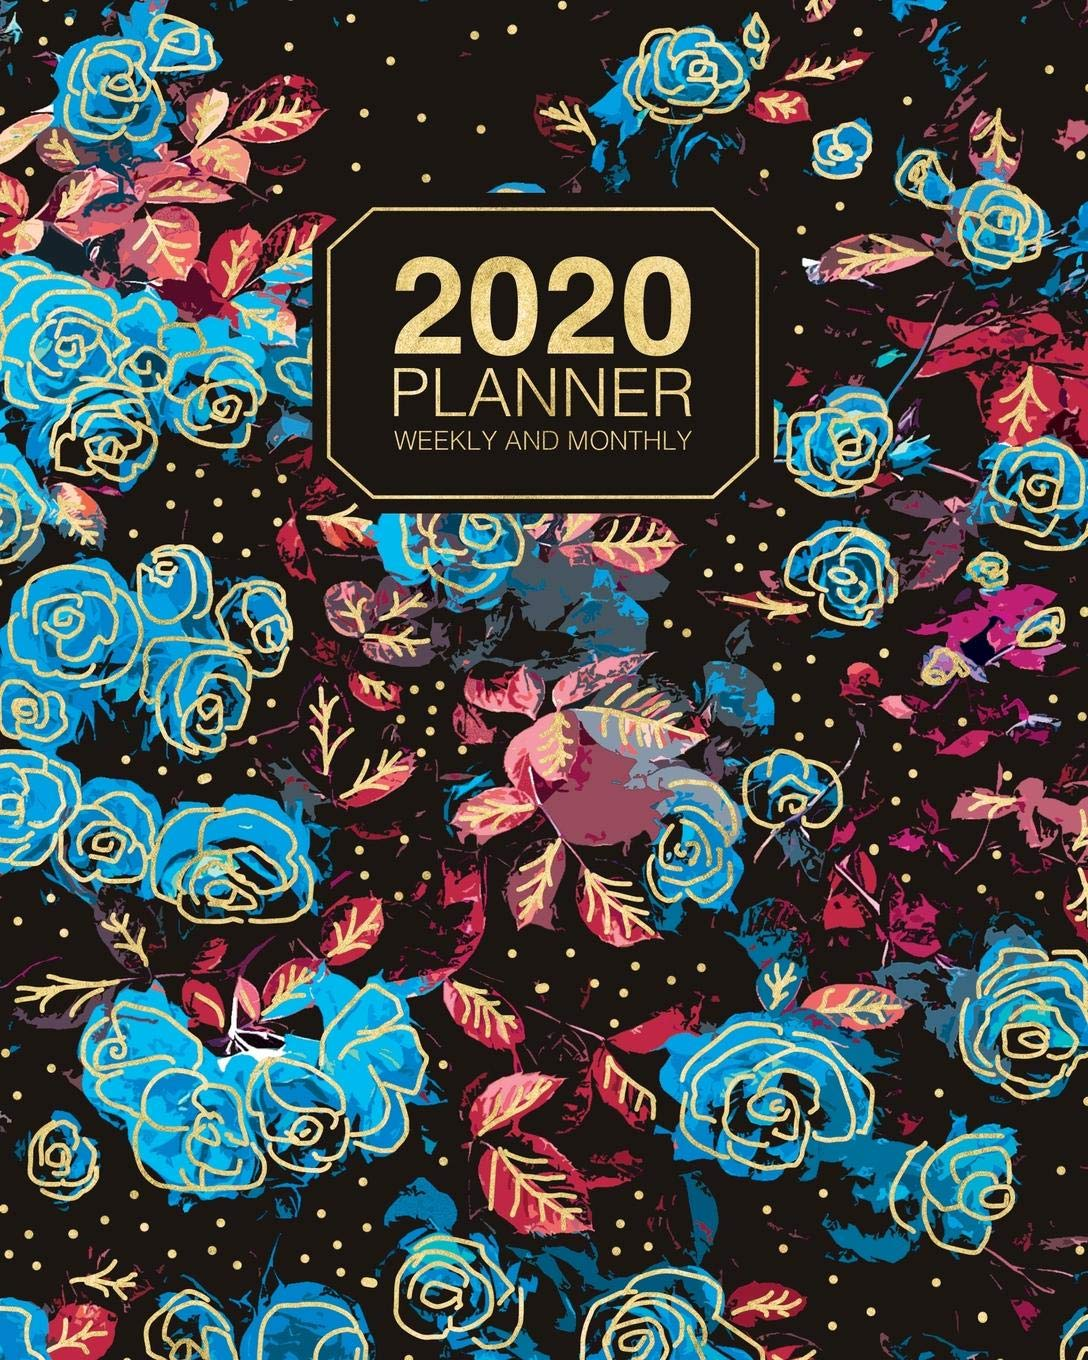 2020 Planner Weekly And Monthly: 2020 Agenda Organizer ...